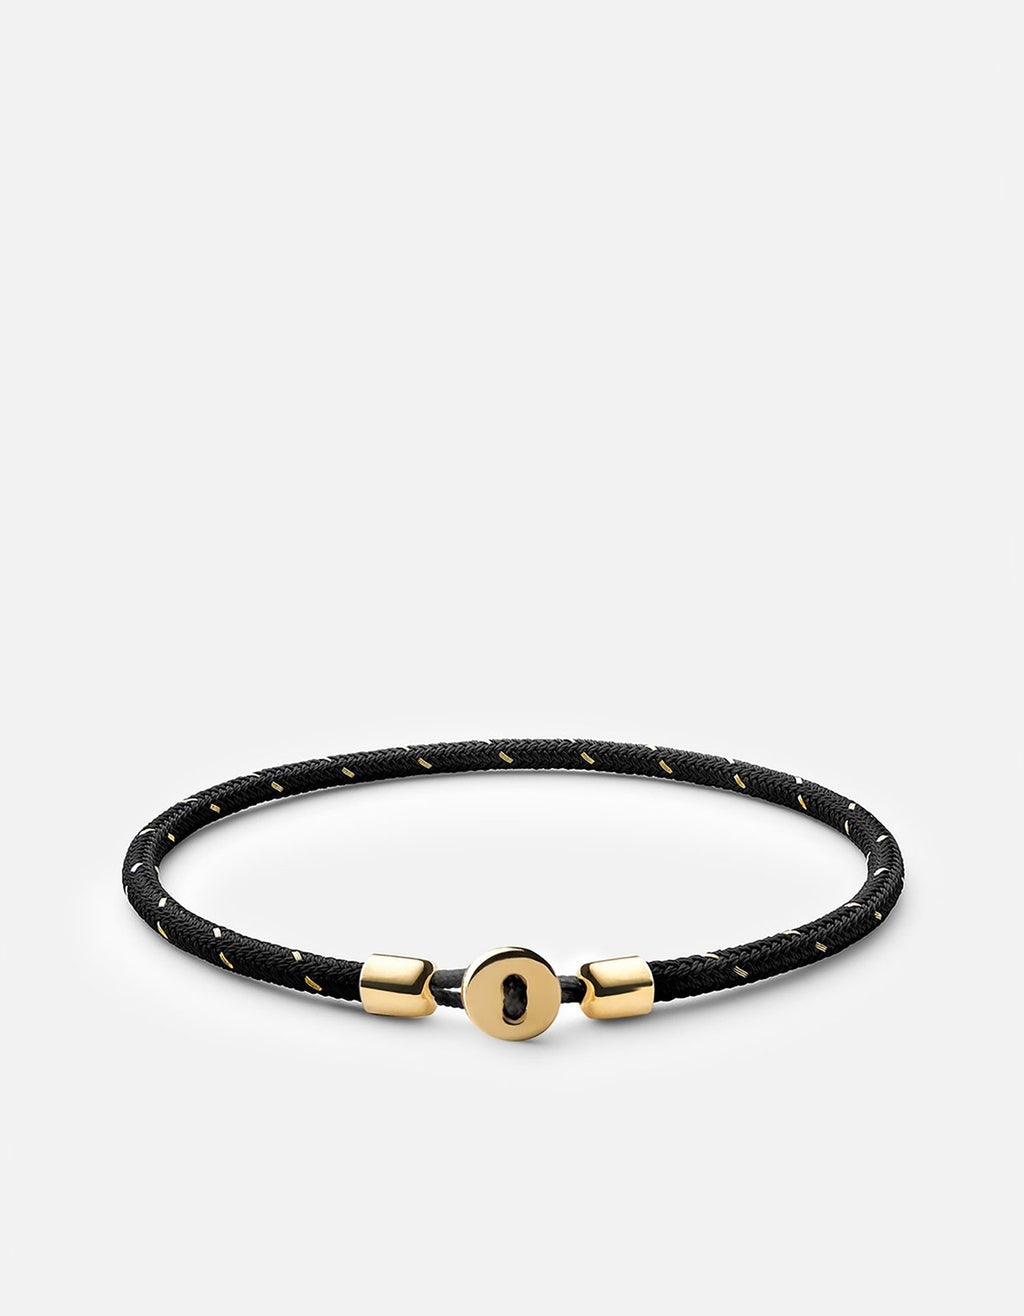 Miansai Nexus Rope Bracelet, Gold Vermeil, Polished